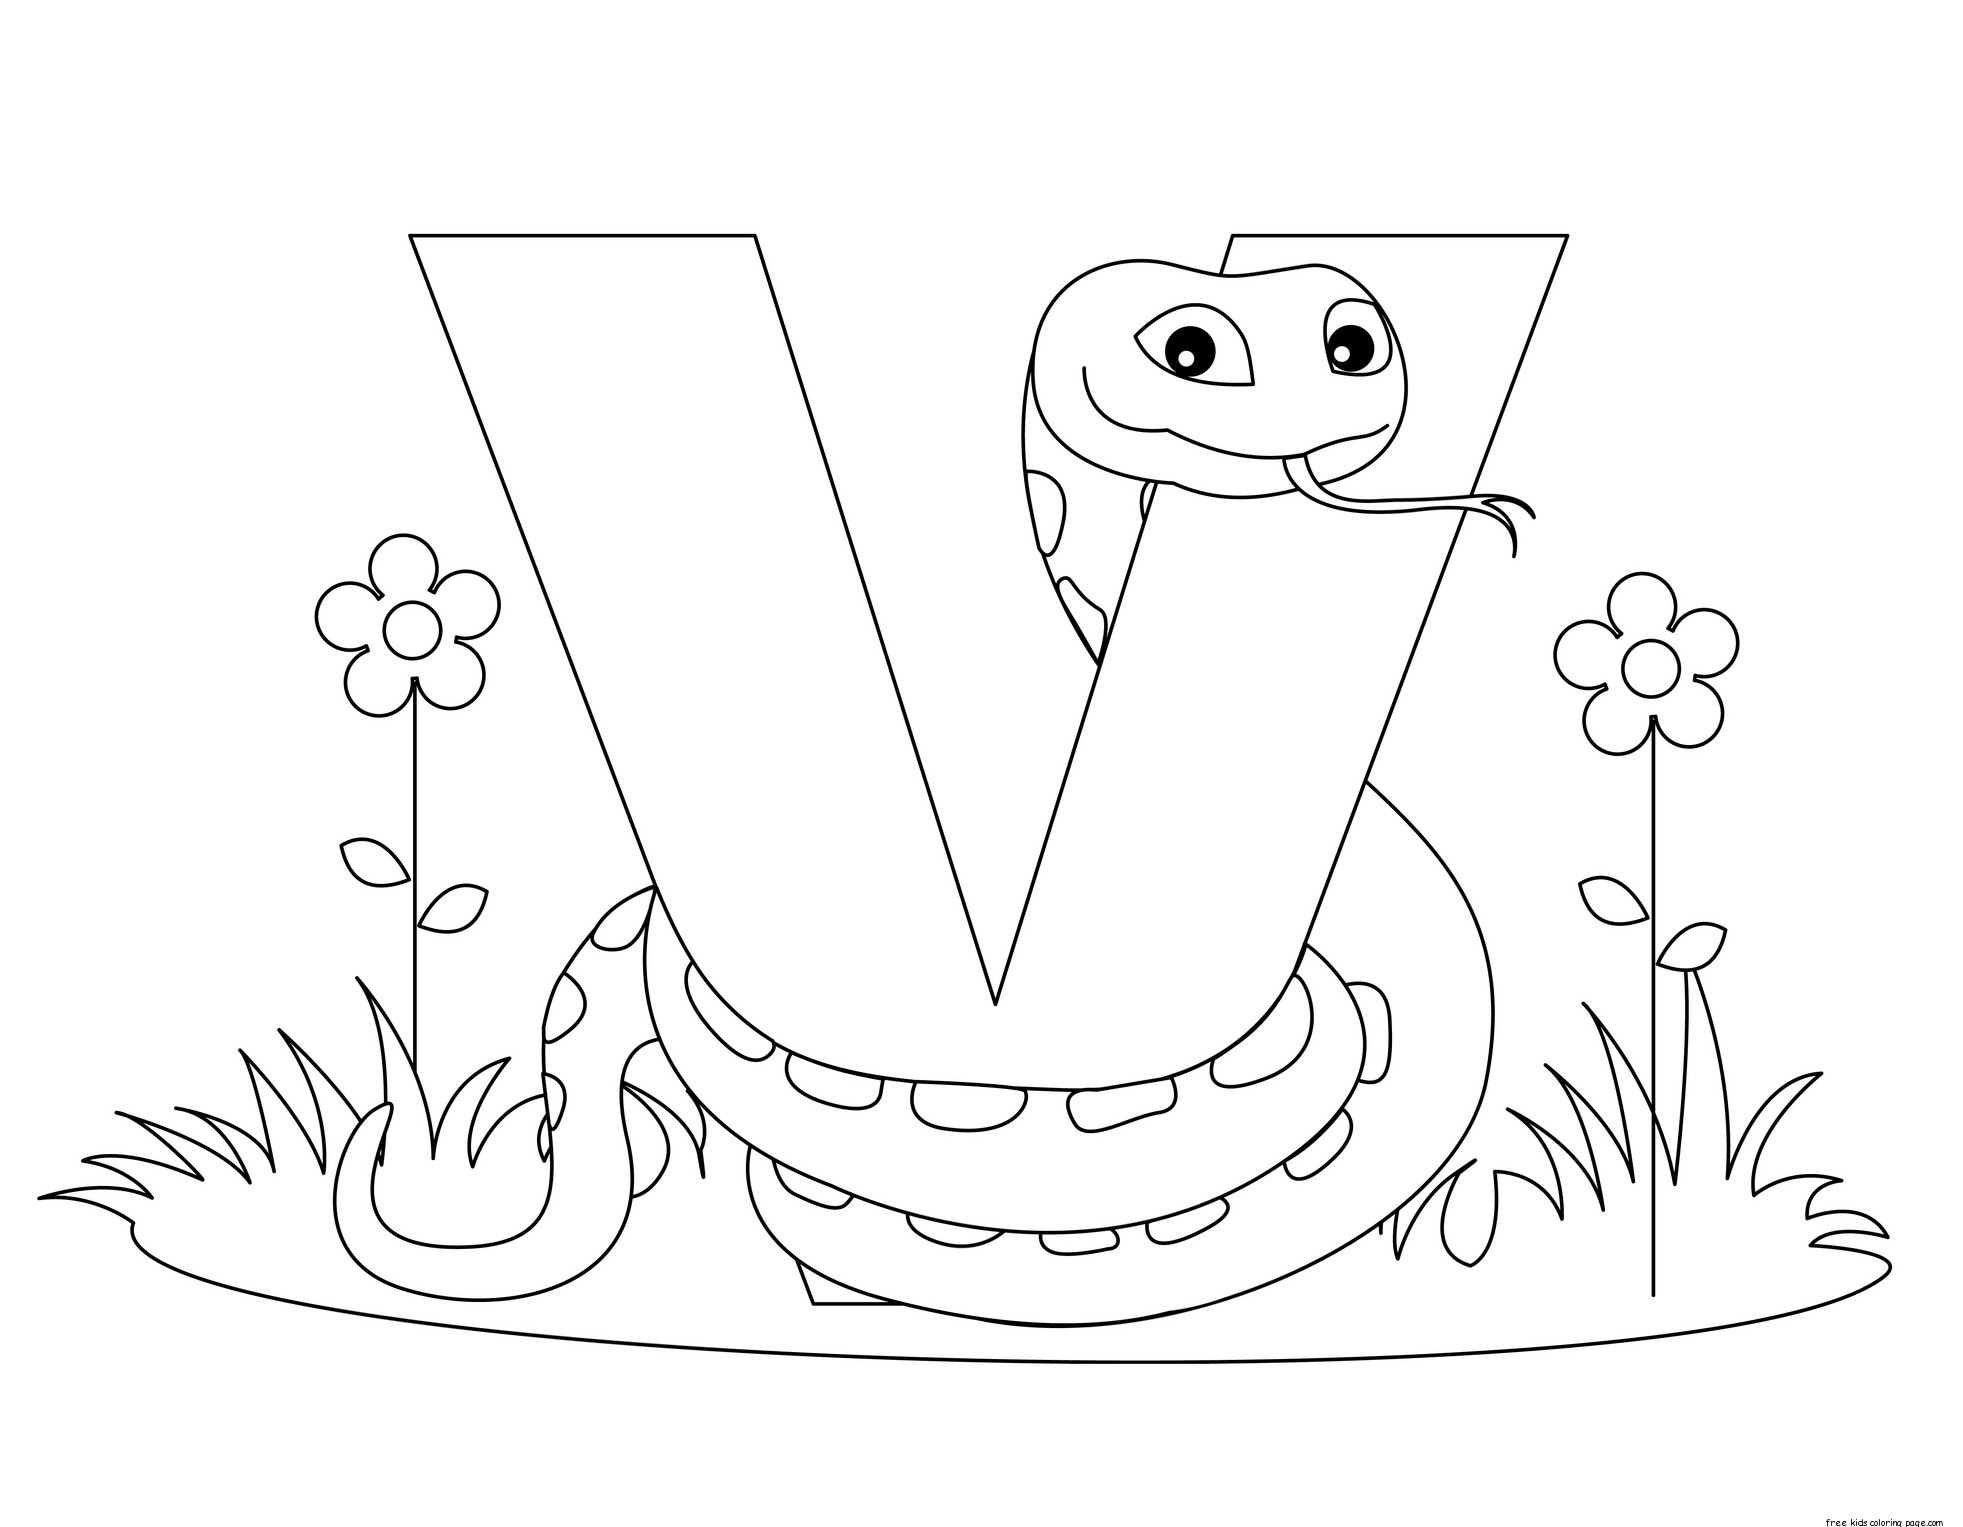 animal alphabet colouring pages pritnable alphabet letter f preschool activities colouring pages animal alphabet